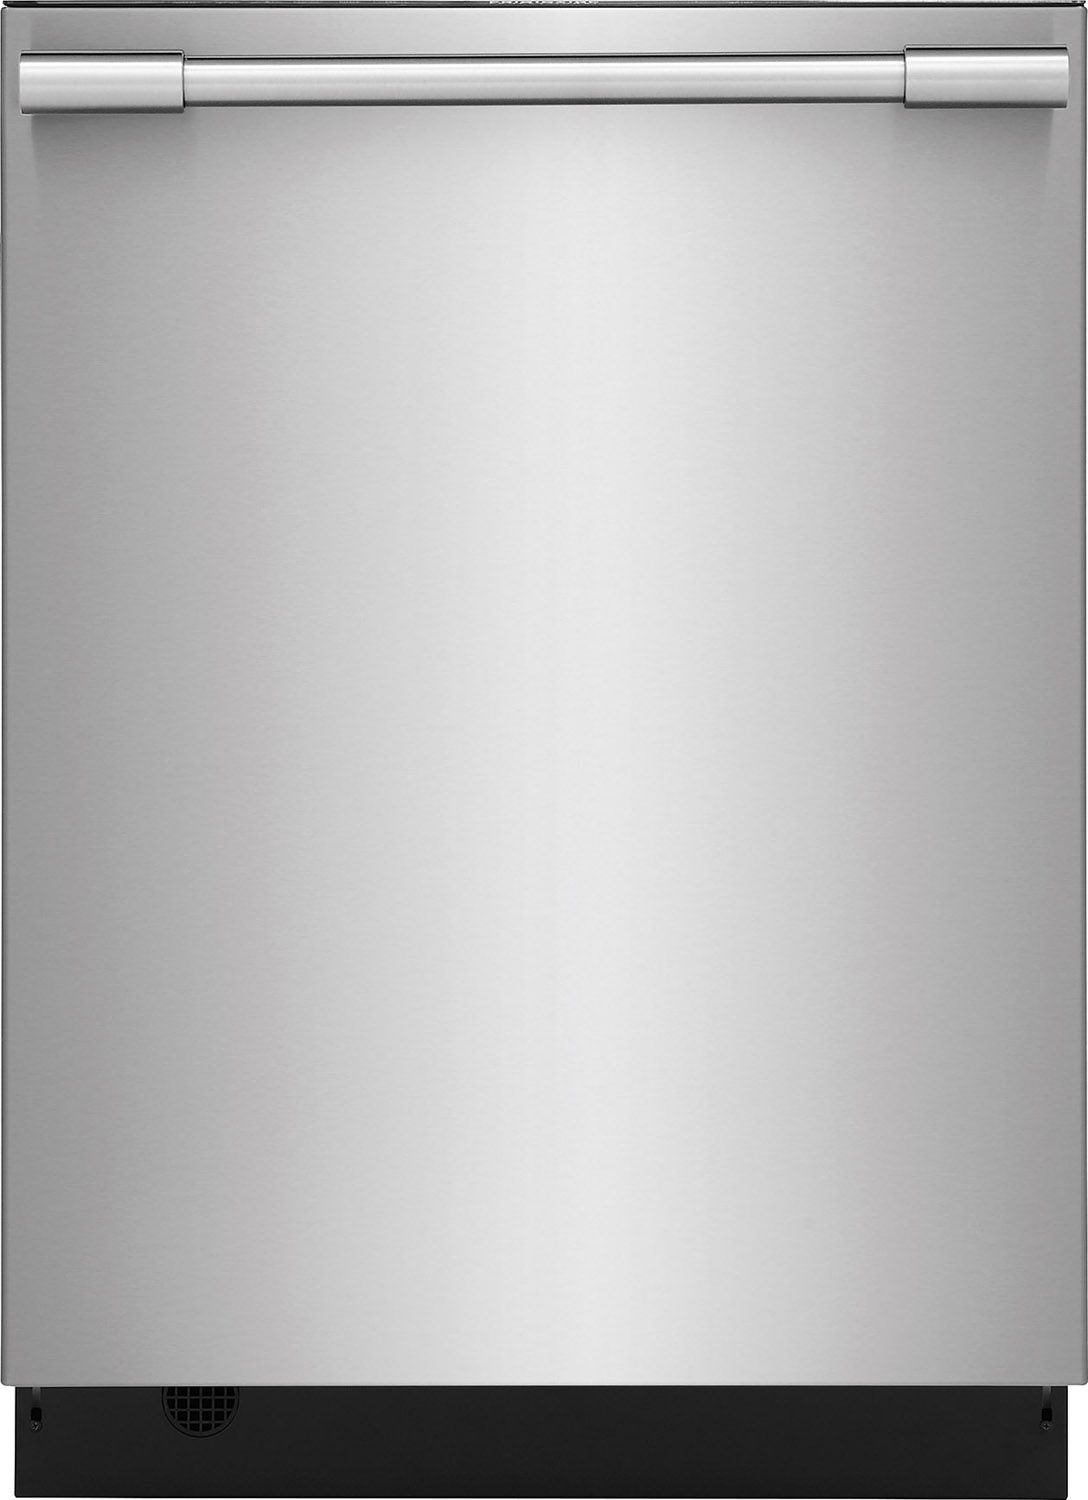 Frigidaire Professional 24 Stainless Steel Built In Dishwasher In 2020 Built In Dishwasher Integrated Dishwasher Fully Integrated Dishwasher